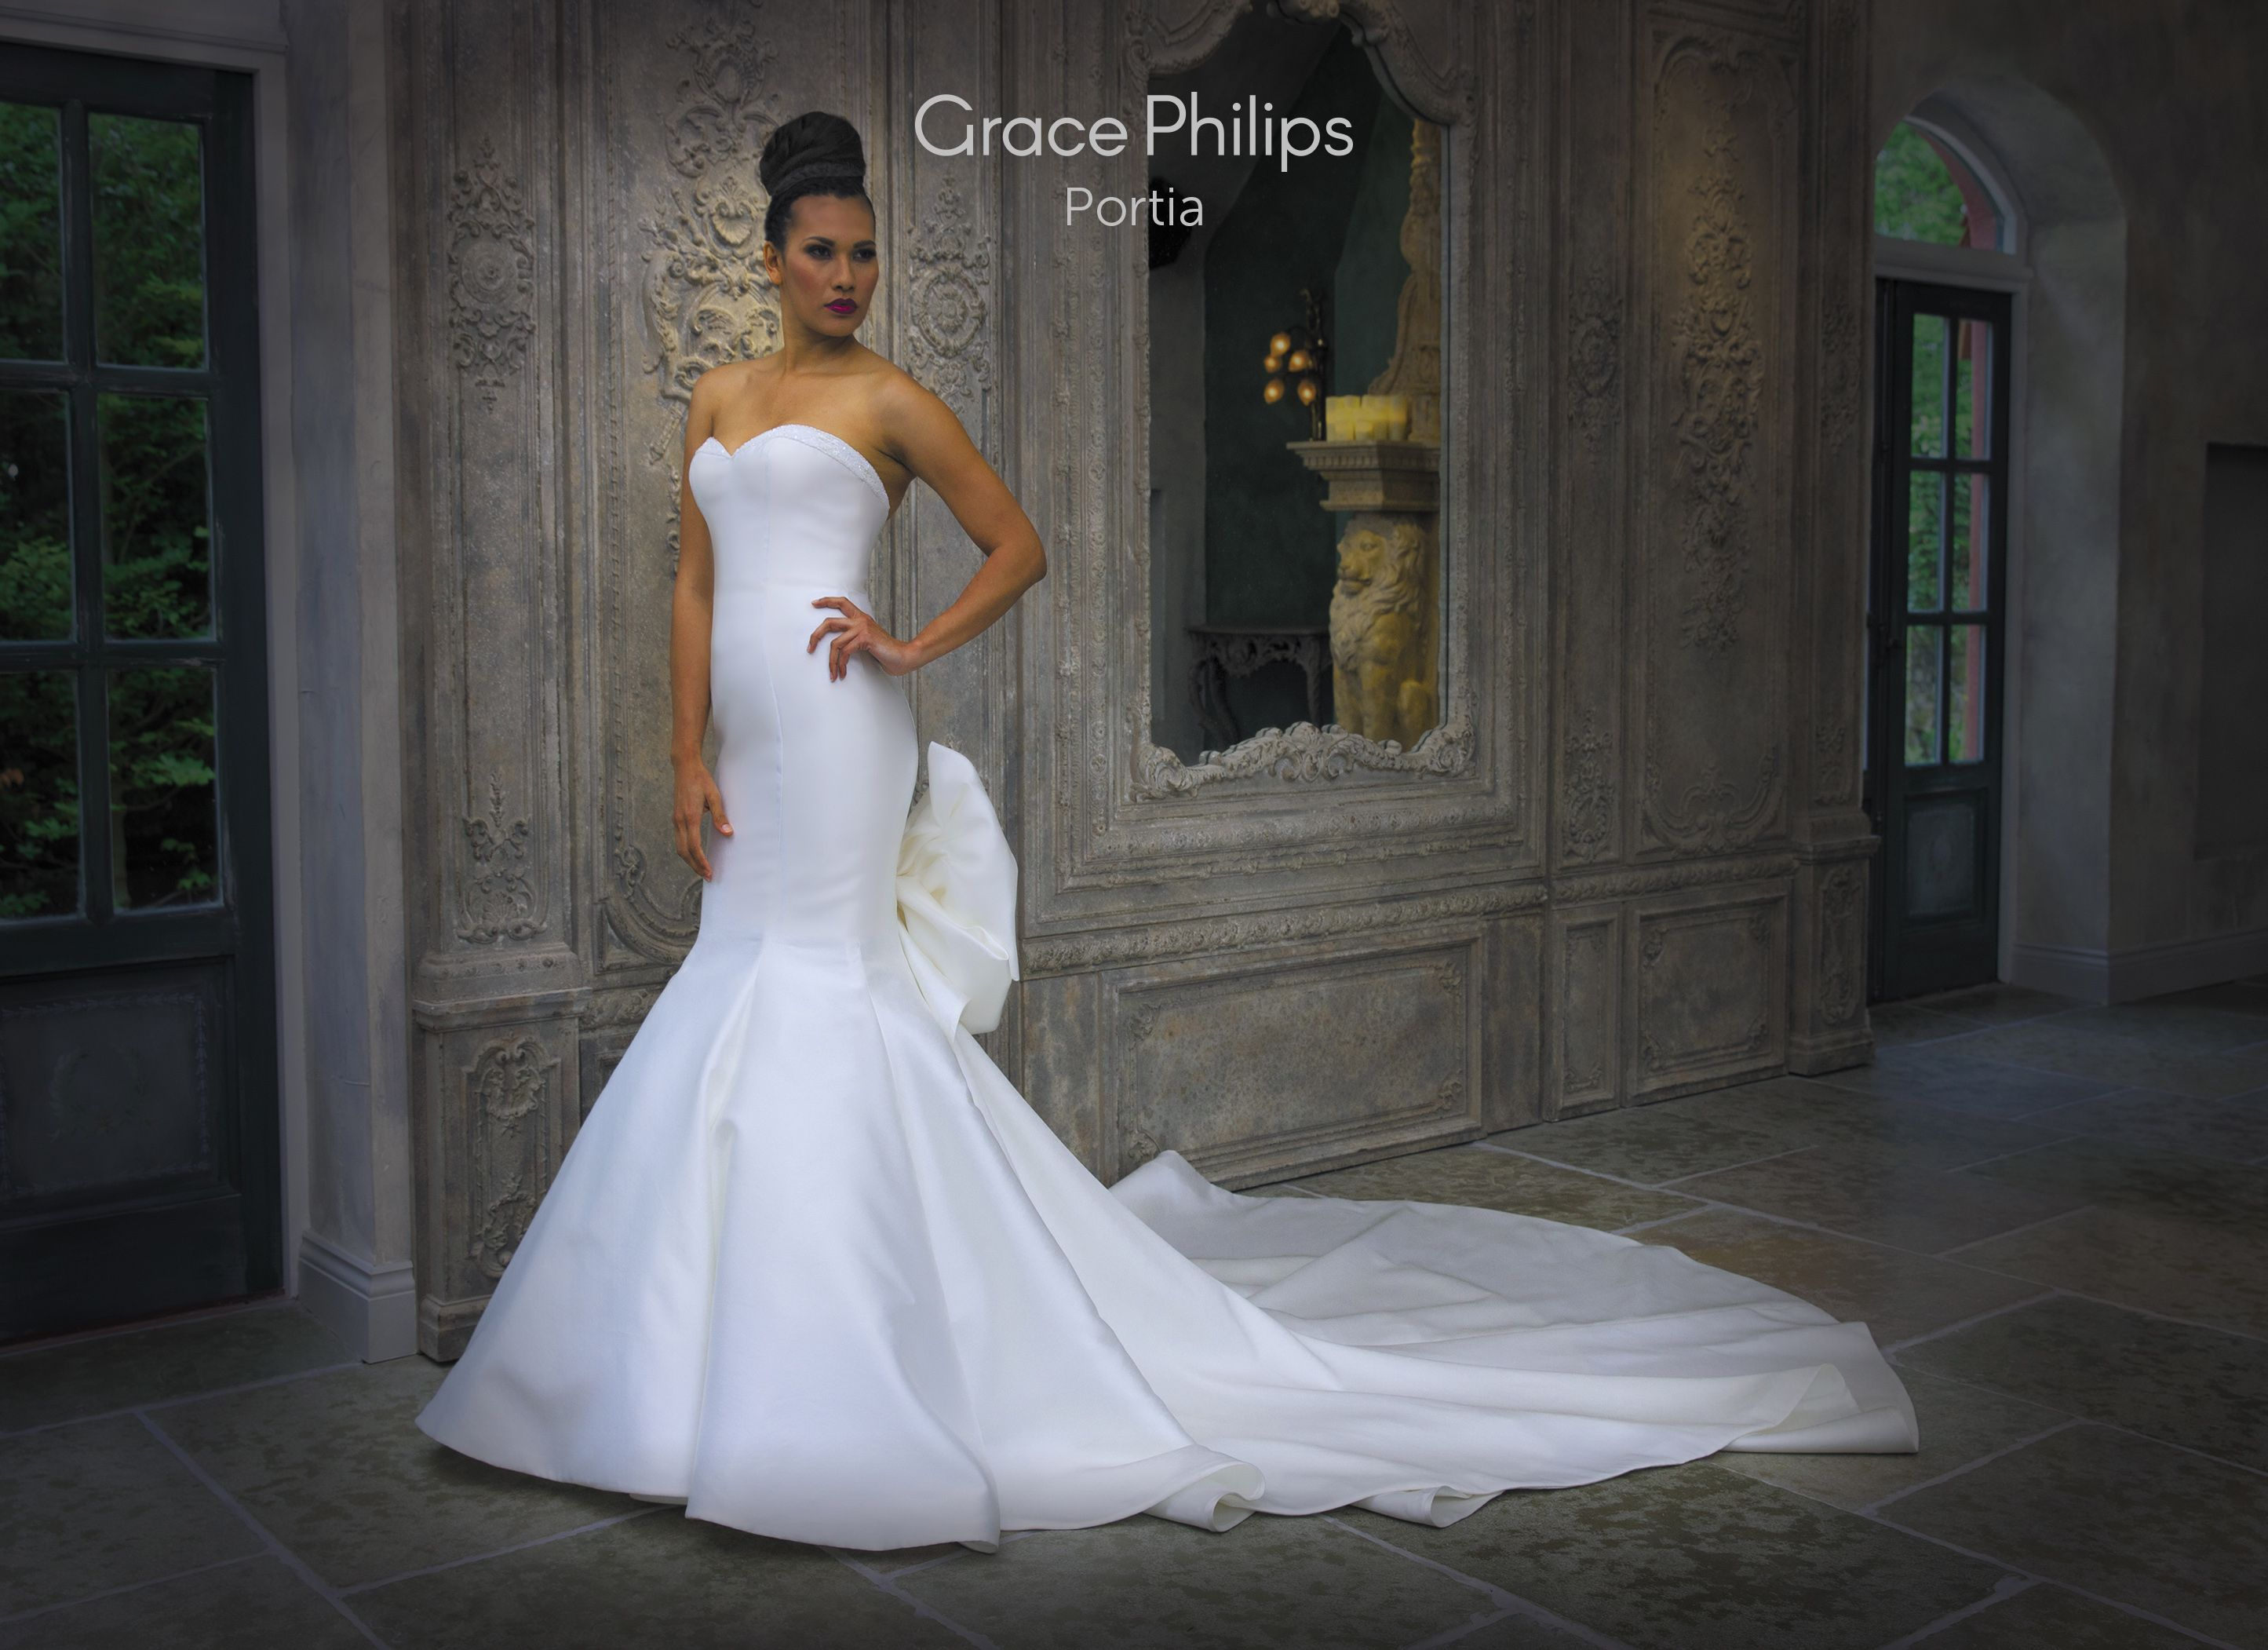 Fishtail Wedding Dress With Train : Fishtail wedding dresses dressses trains ivory forward